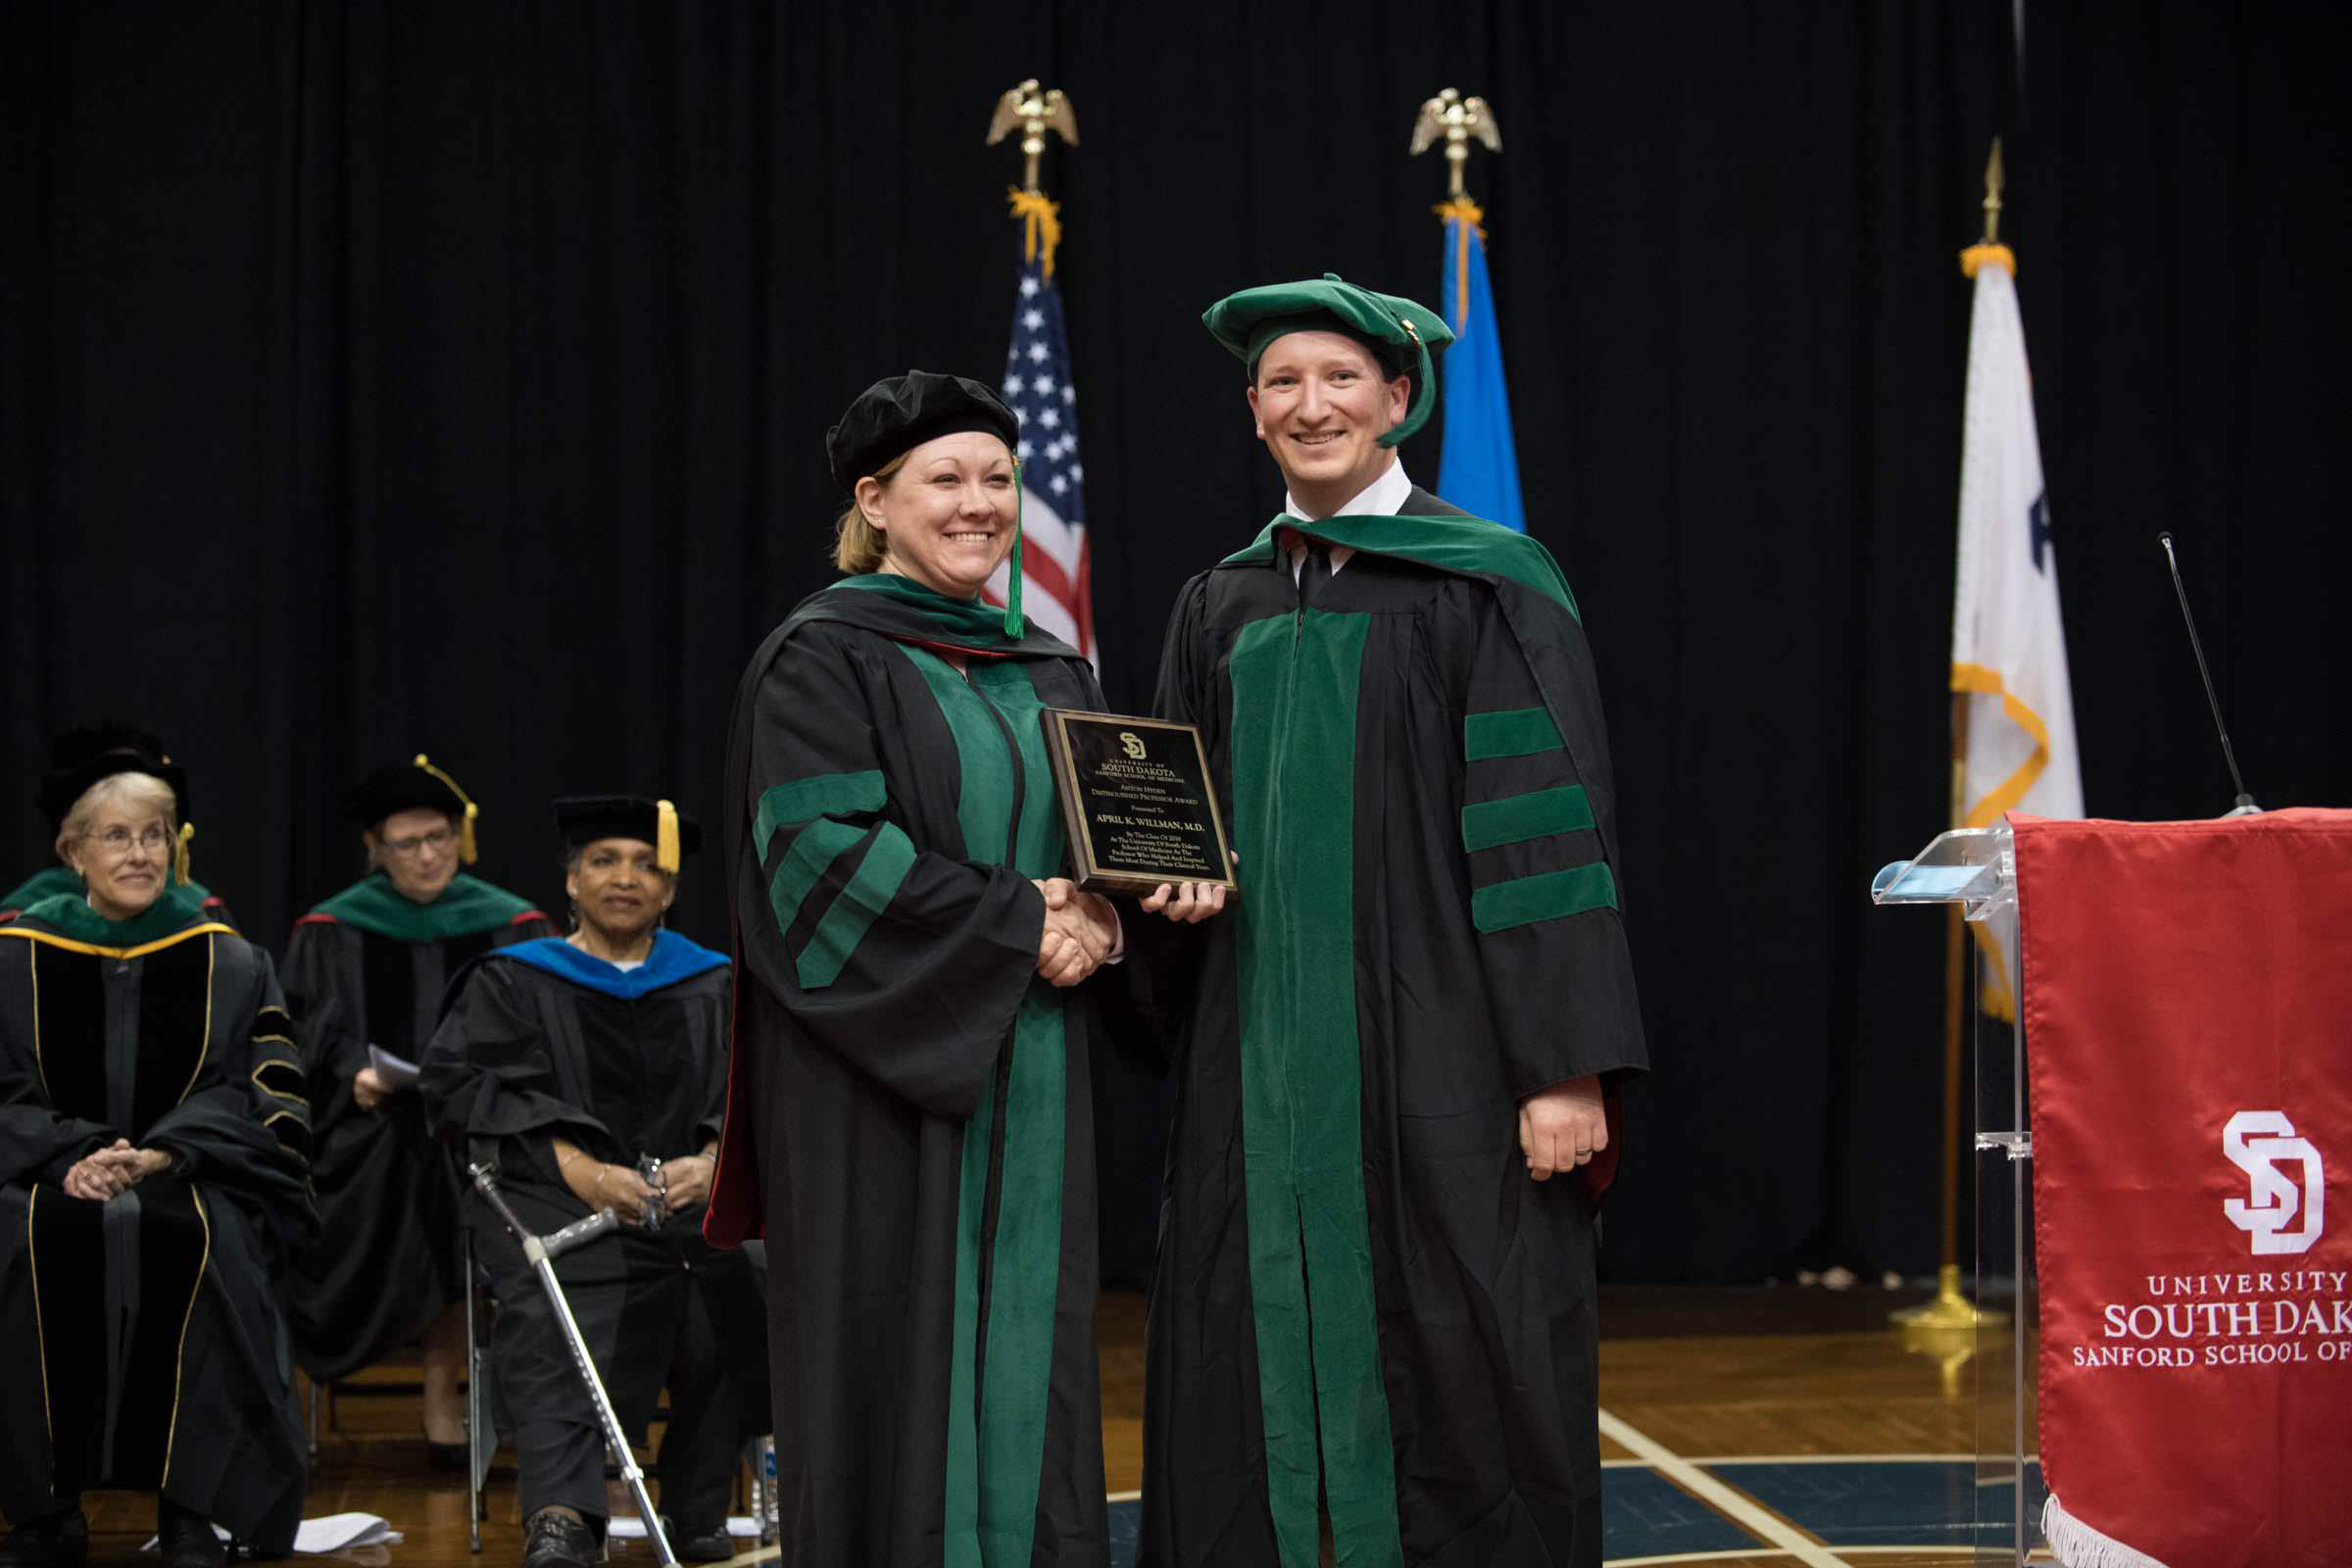 Dr. April Willman Receives USD Sanford School of Medicine Hyden Award